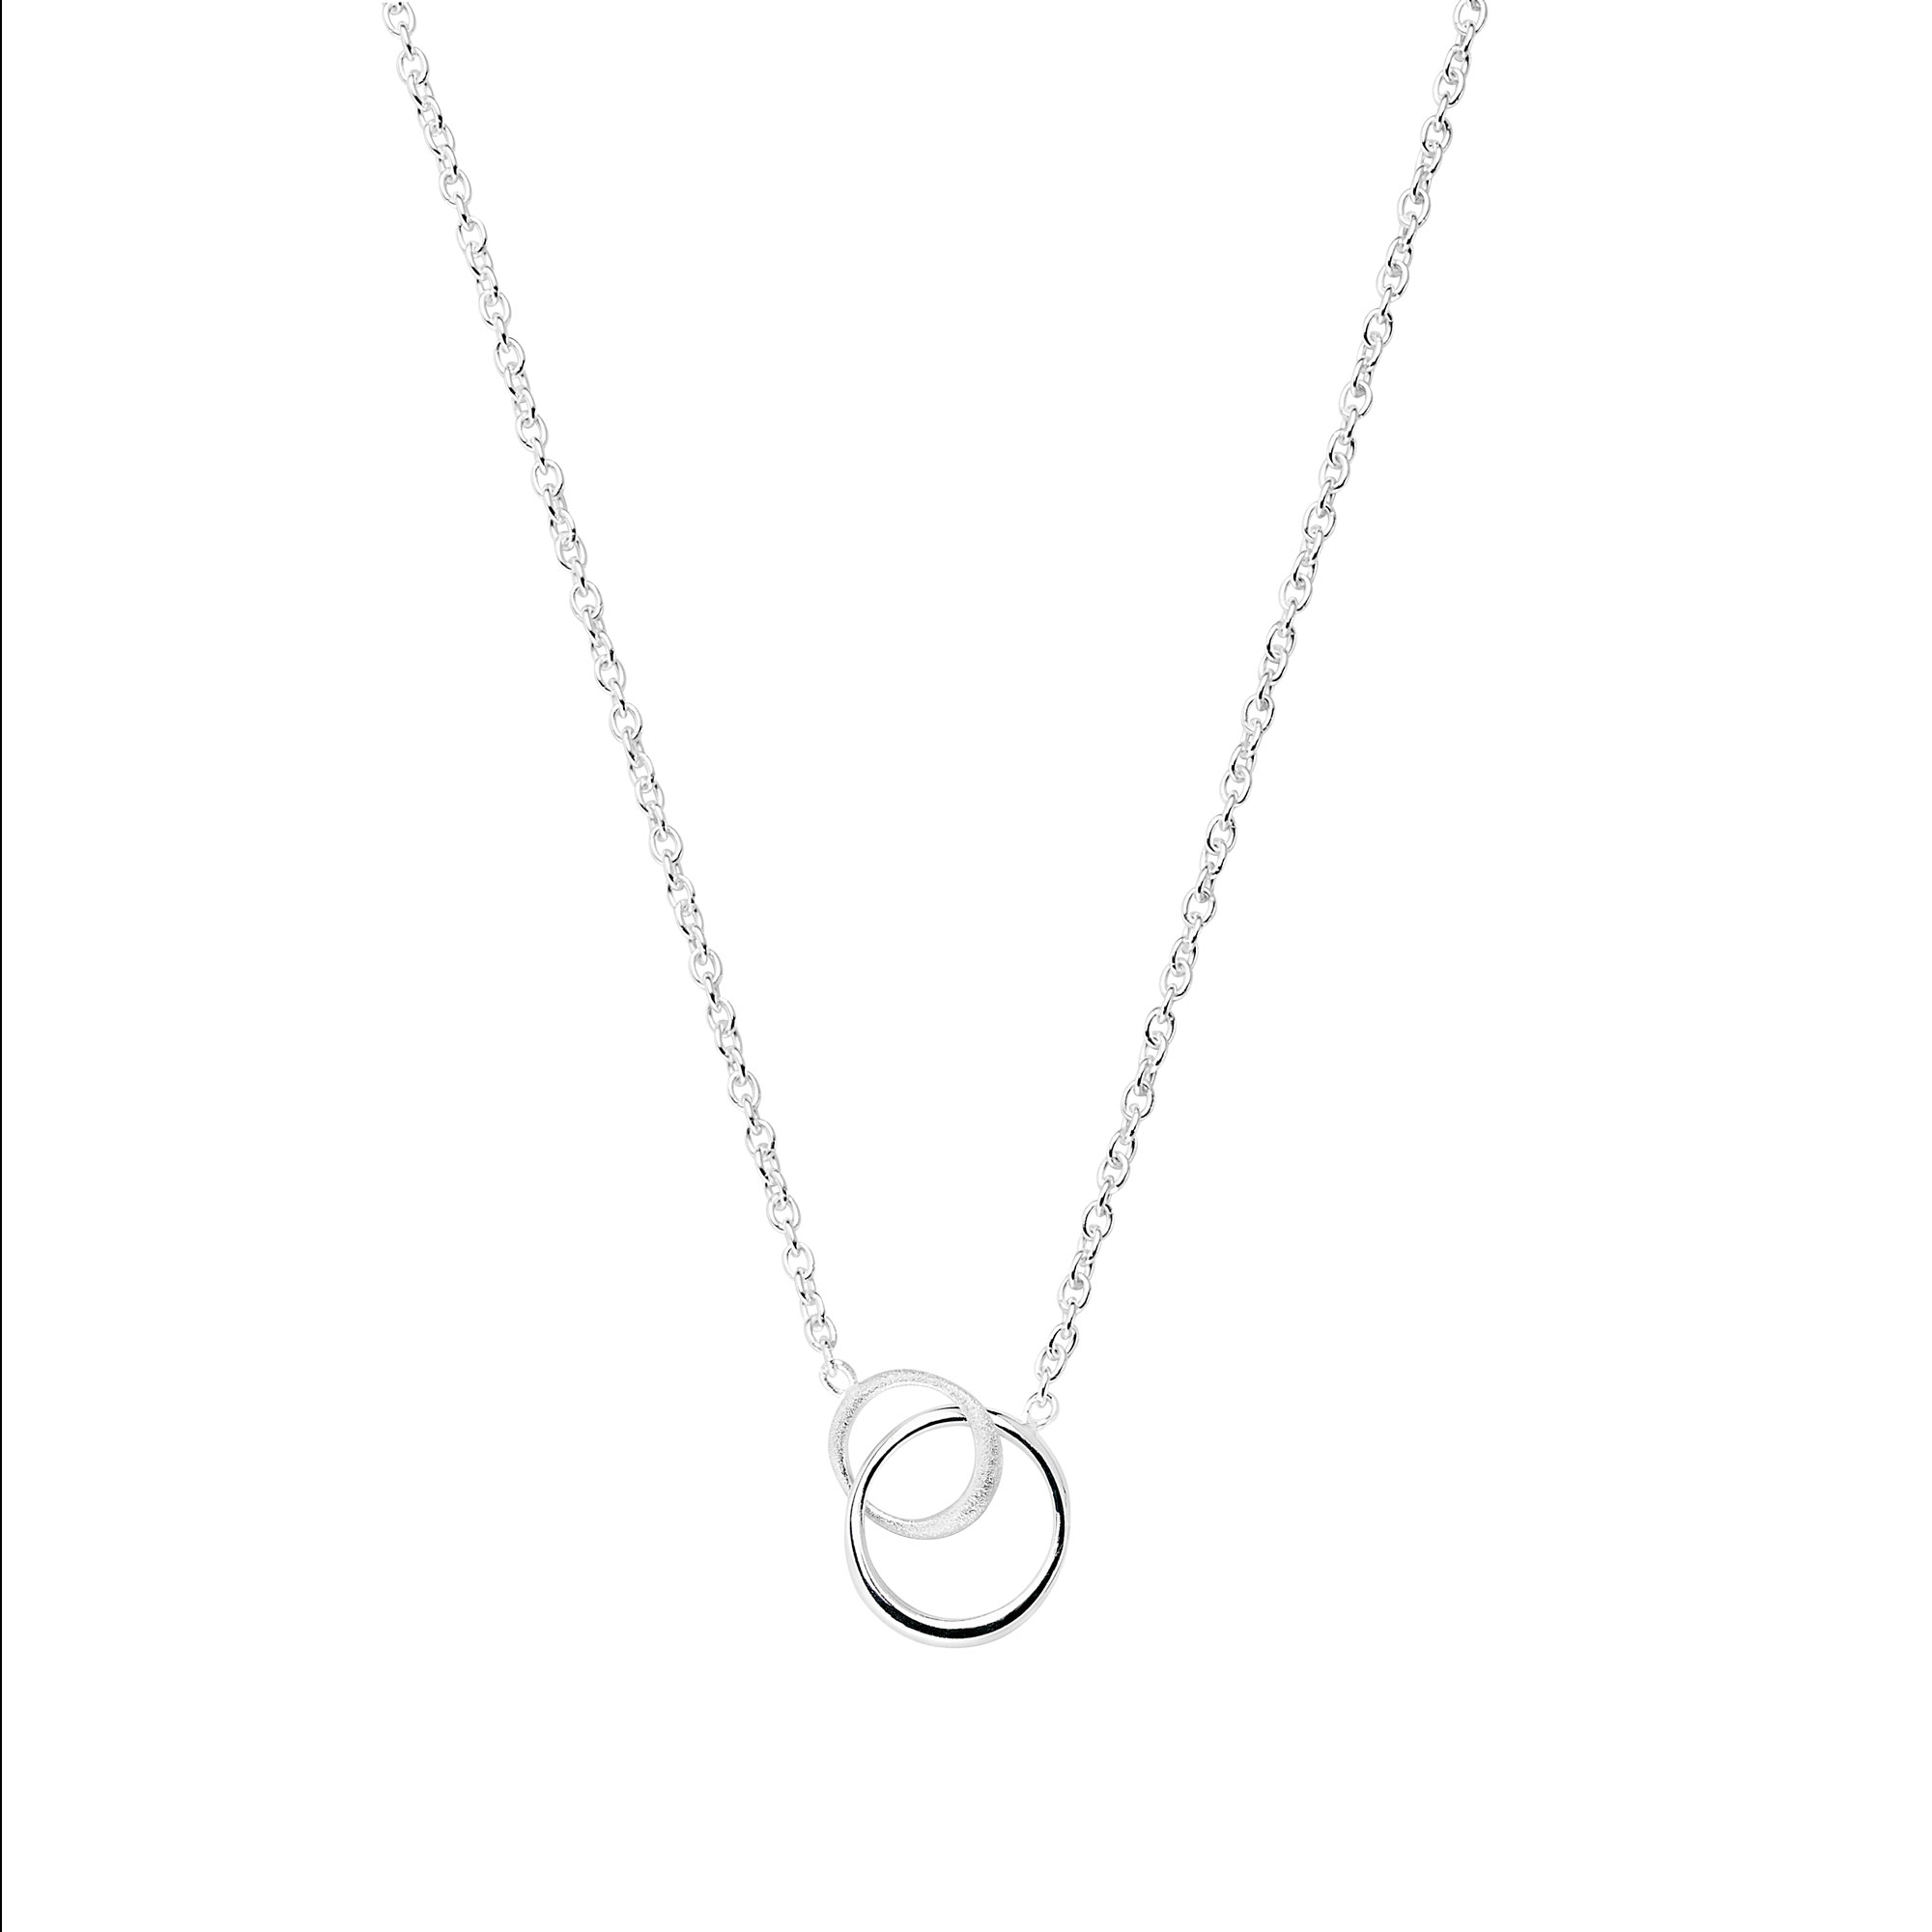 Les Amis small single necklace 1090 SEK